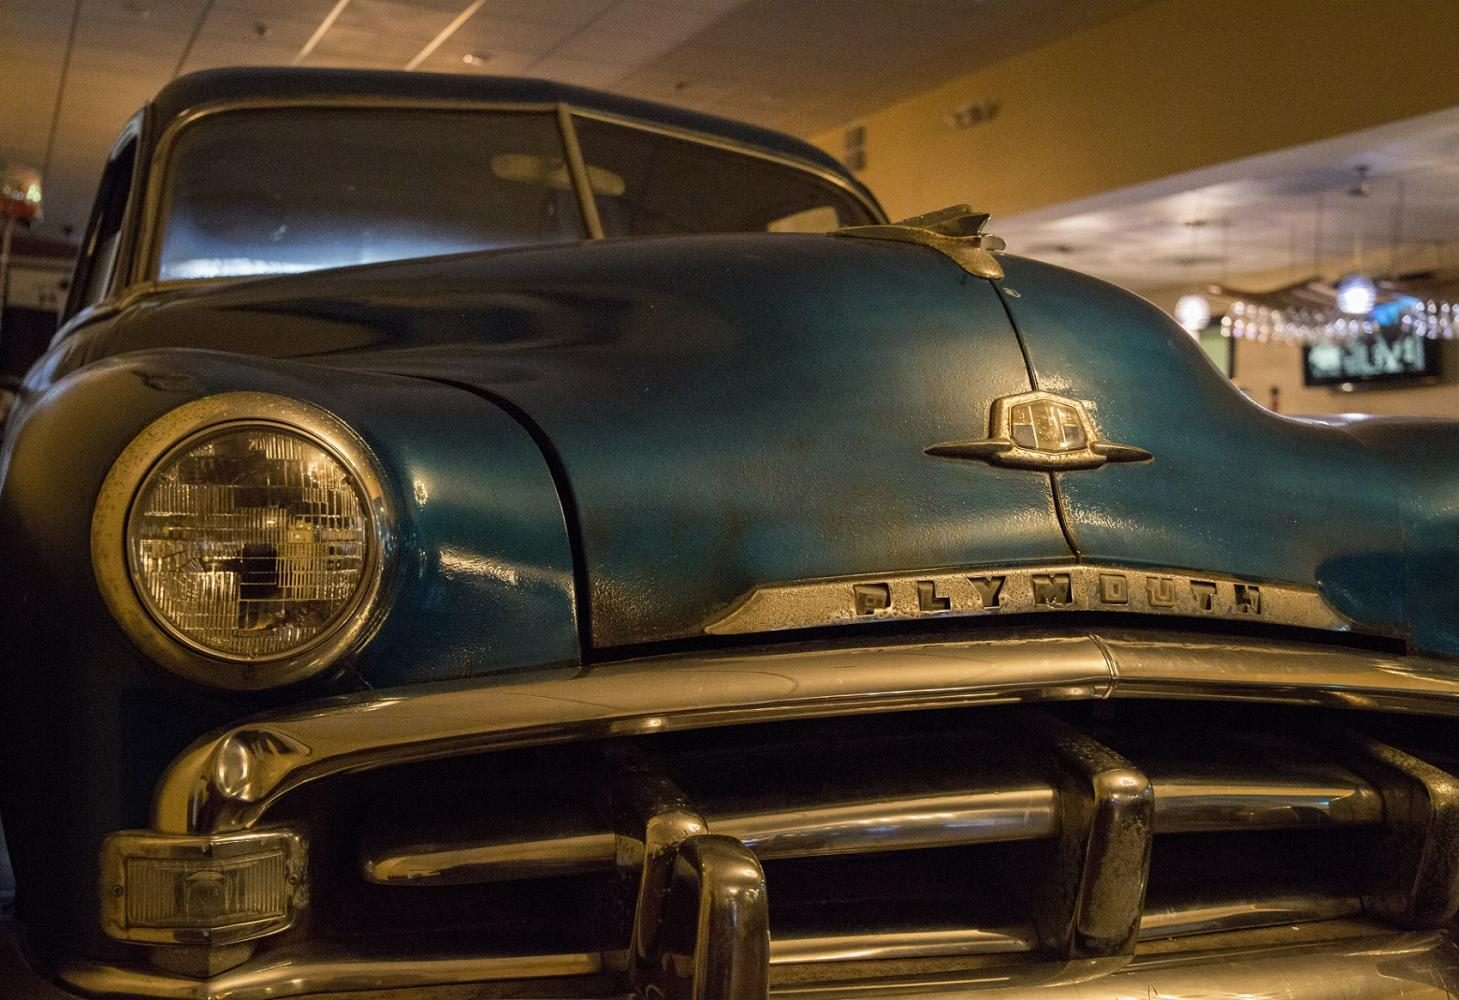 Parked in the restaurant is a 1951 Plymouth